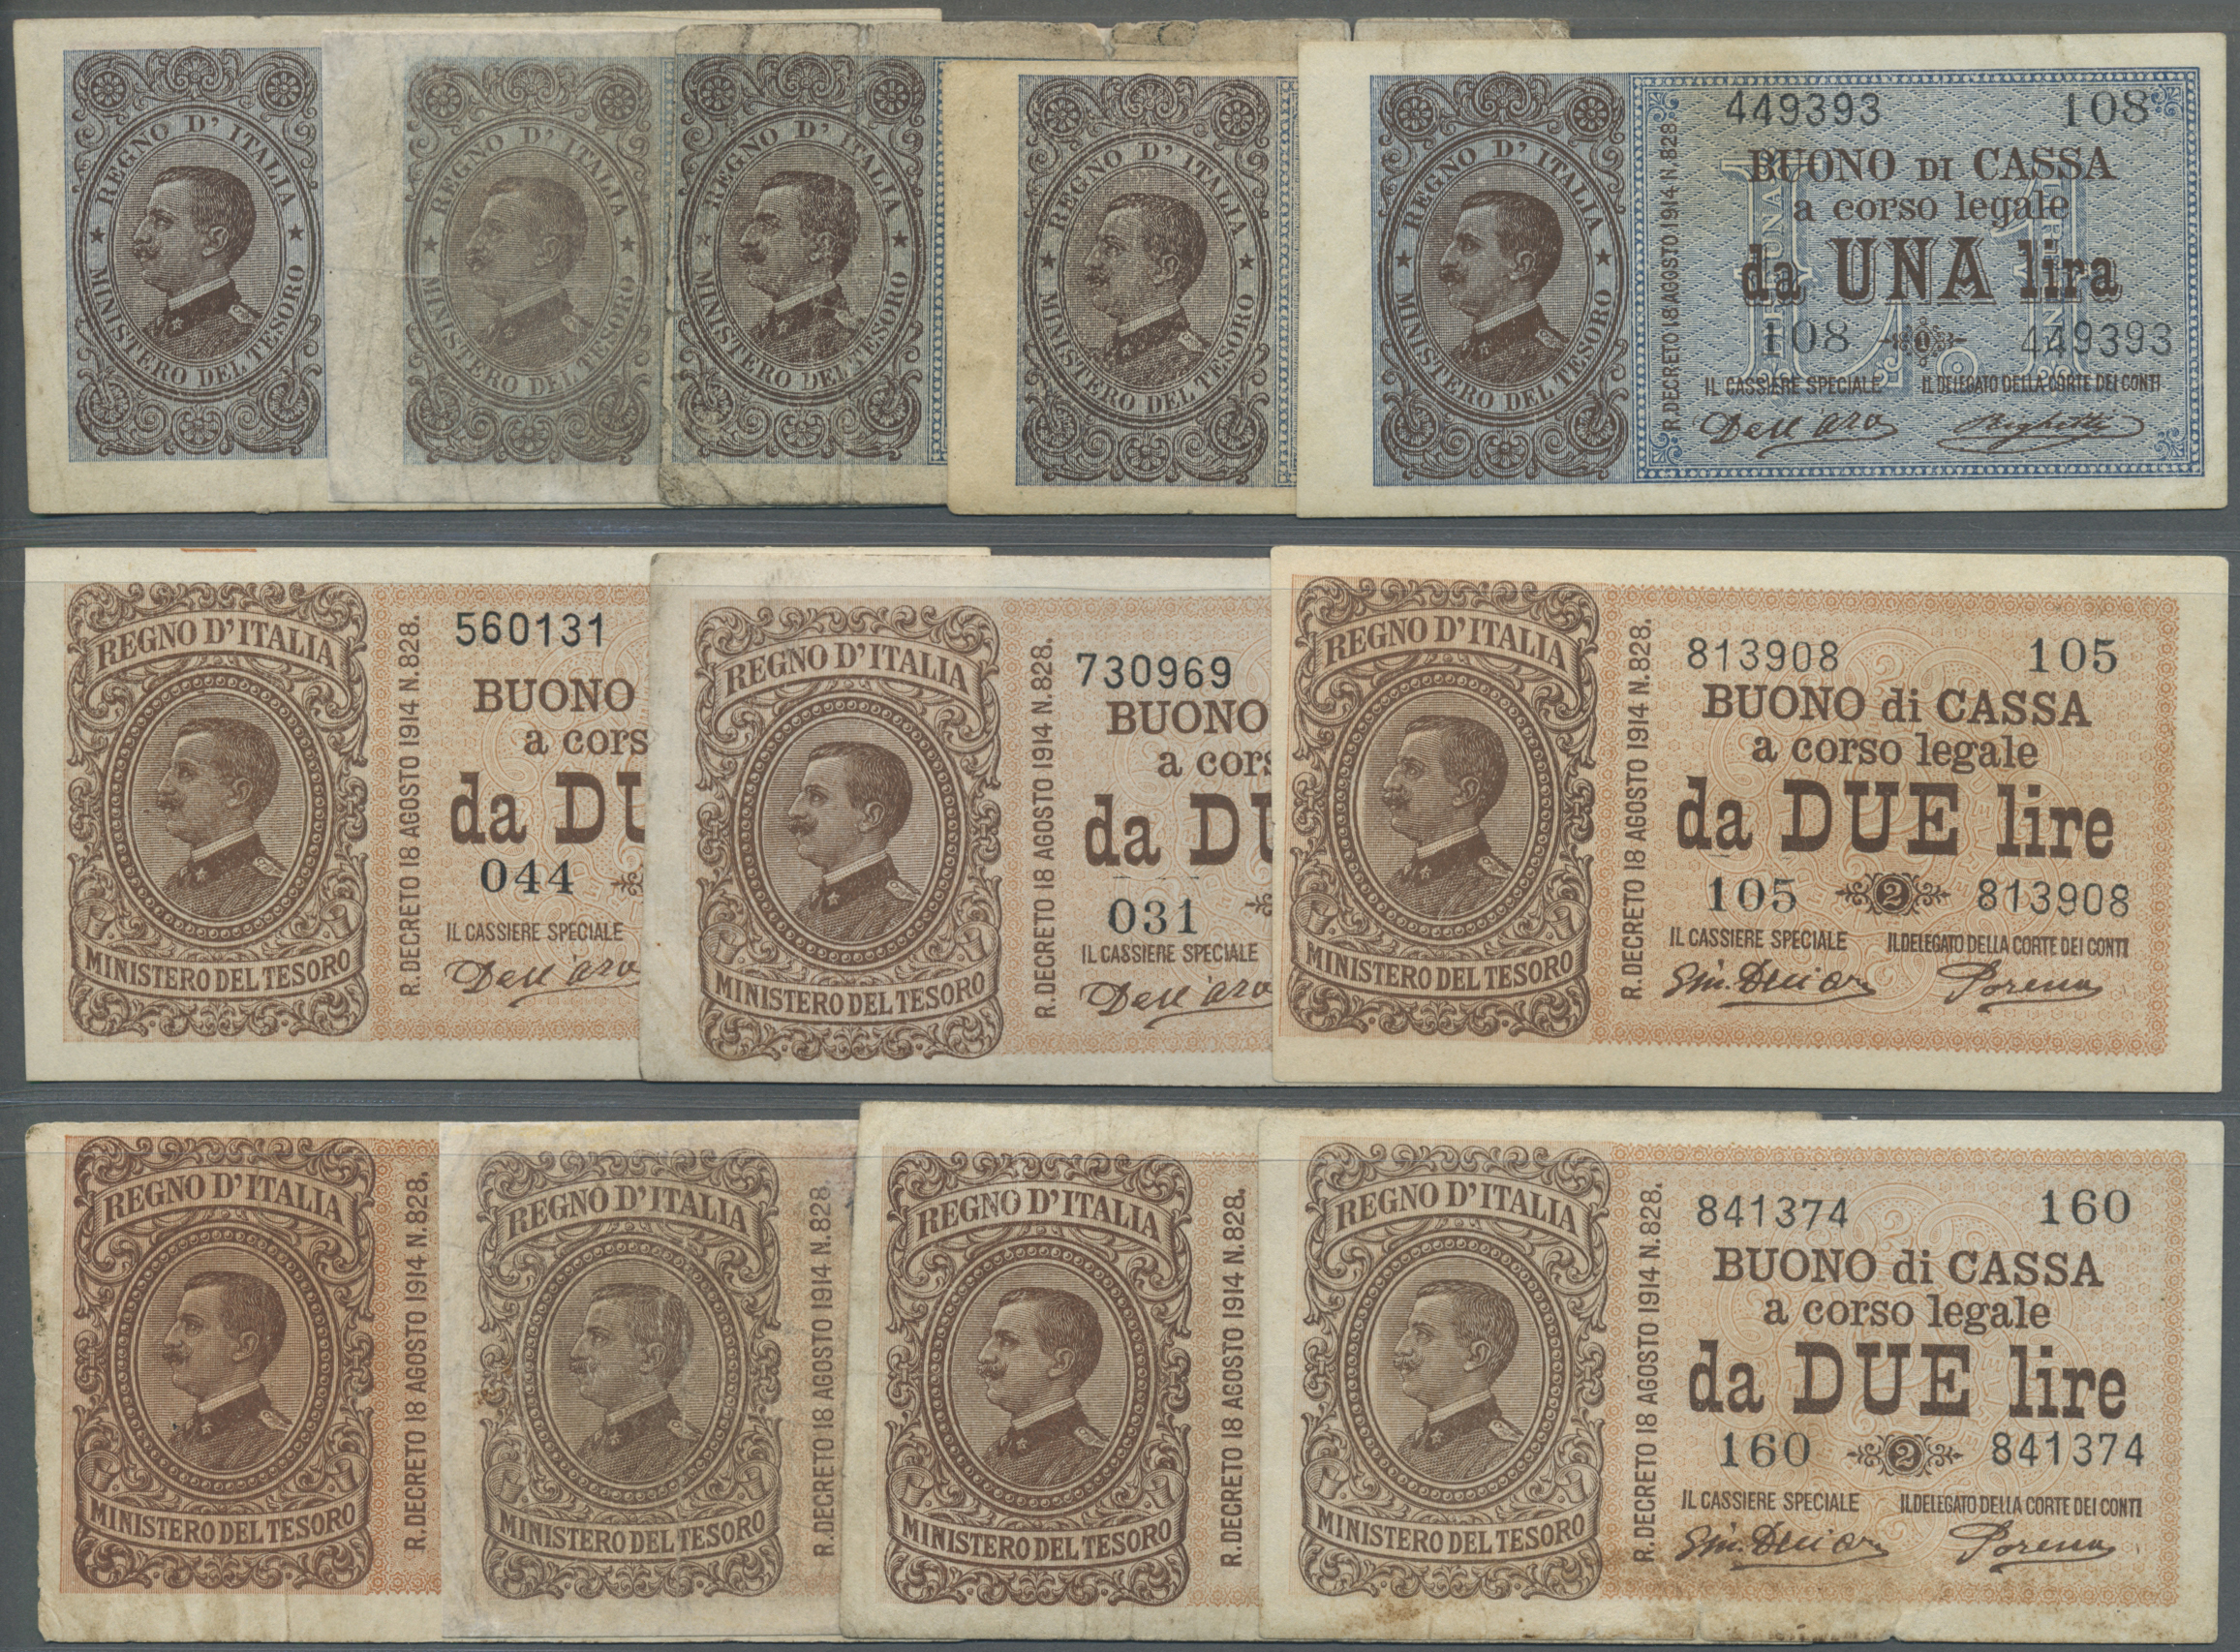 Lot 00453 - Italy / Italien | Banknoten  -  Auktionshaus Christoph Gärtner GmbH & Co. KG Sale #48 The Banknotes